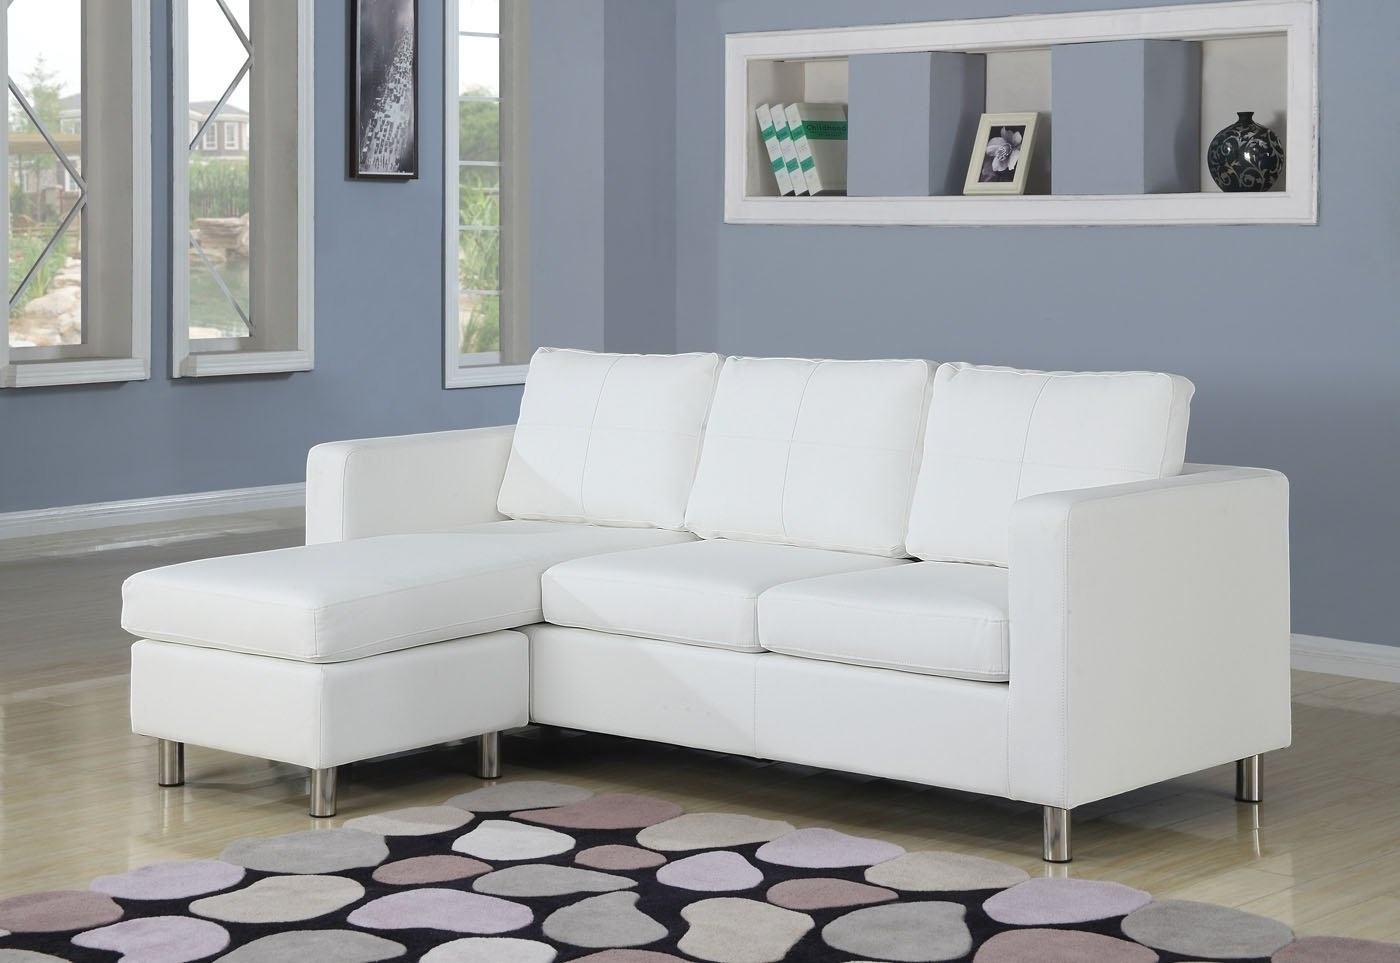 Small Sectional Sofas With Chaise With Regard To Newest Best Small Sectional Sofa With Chaise 49 On Sofas And Couches (View 4 of 15)